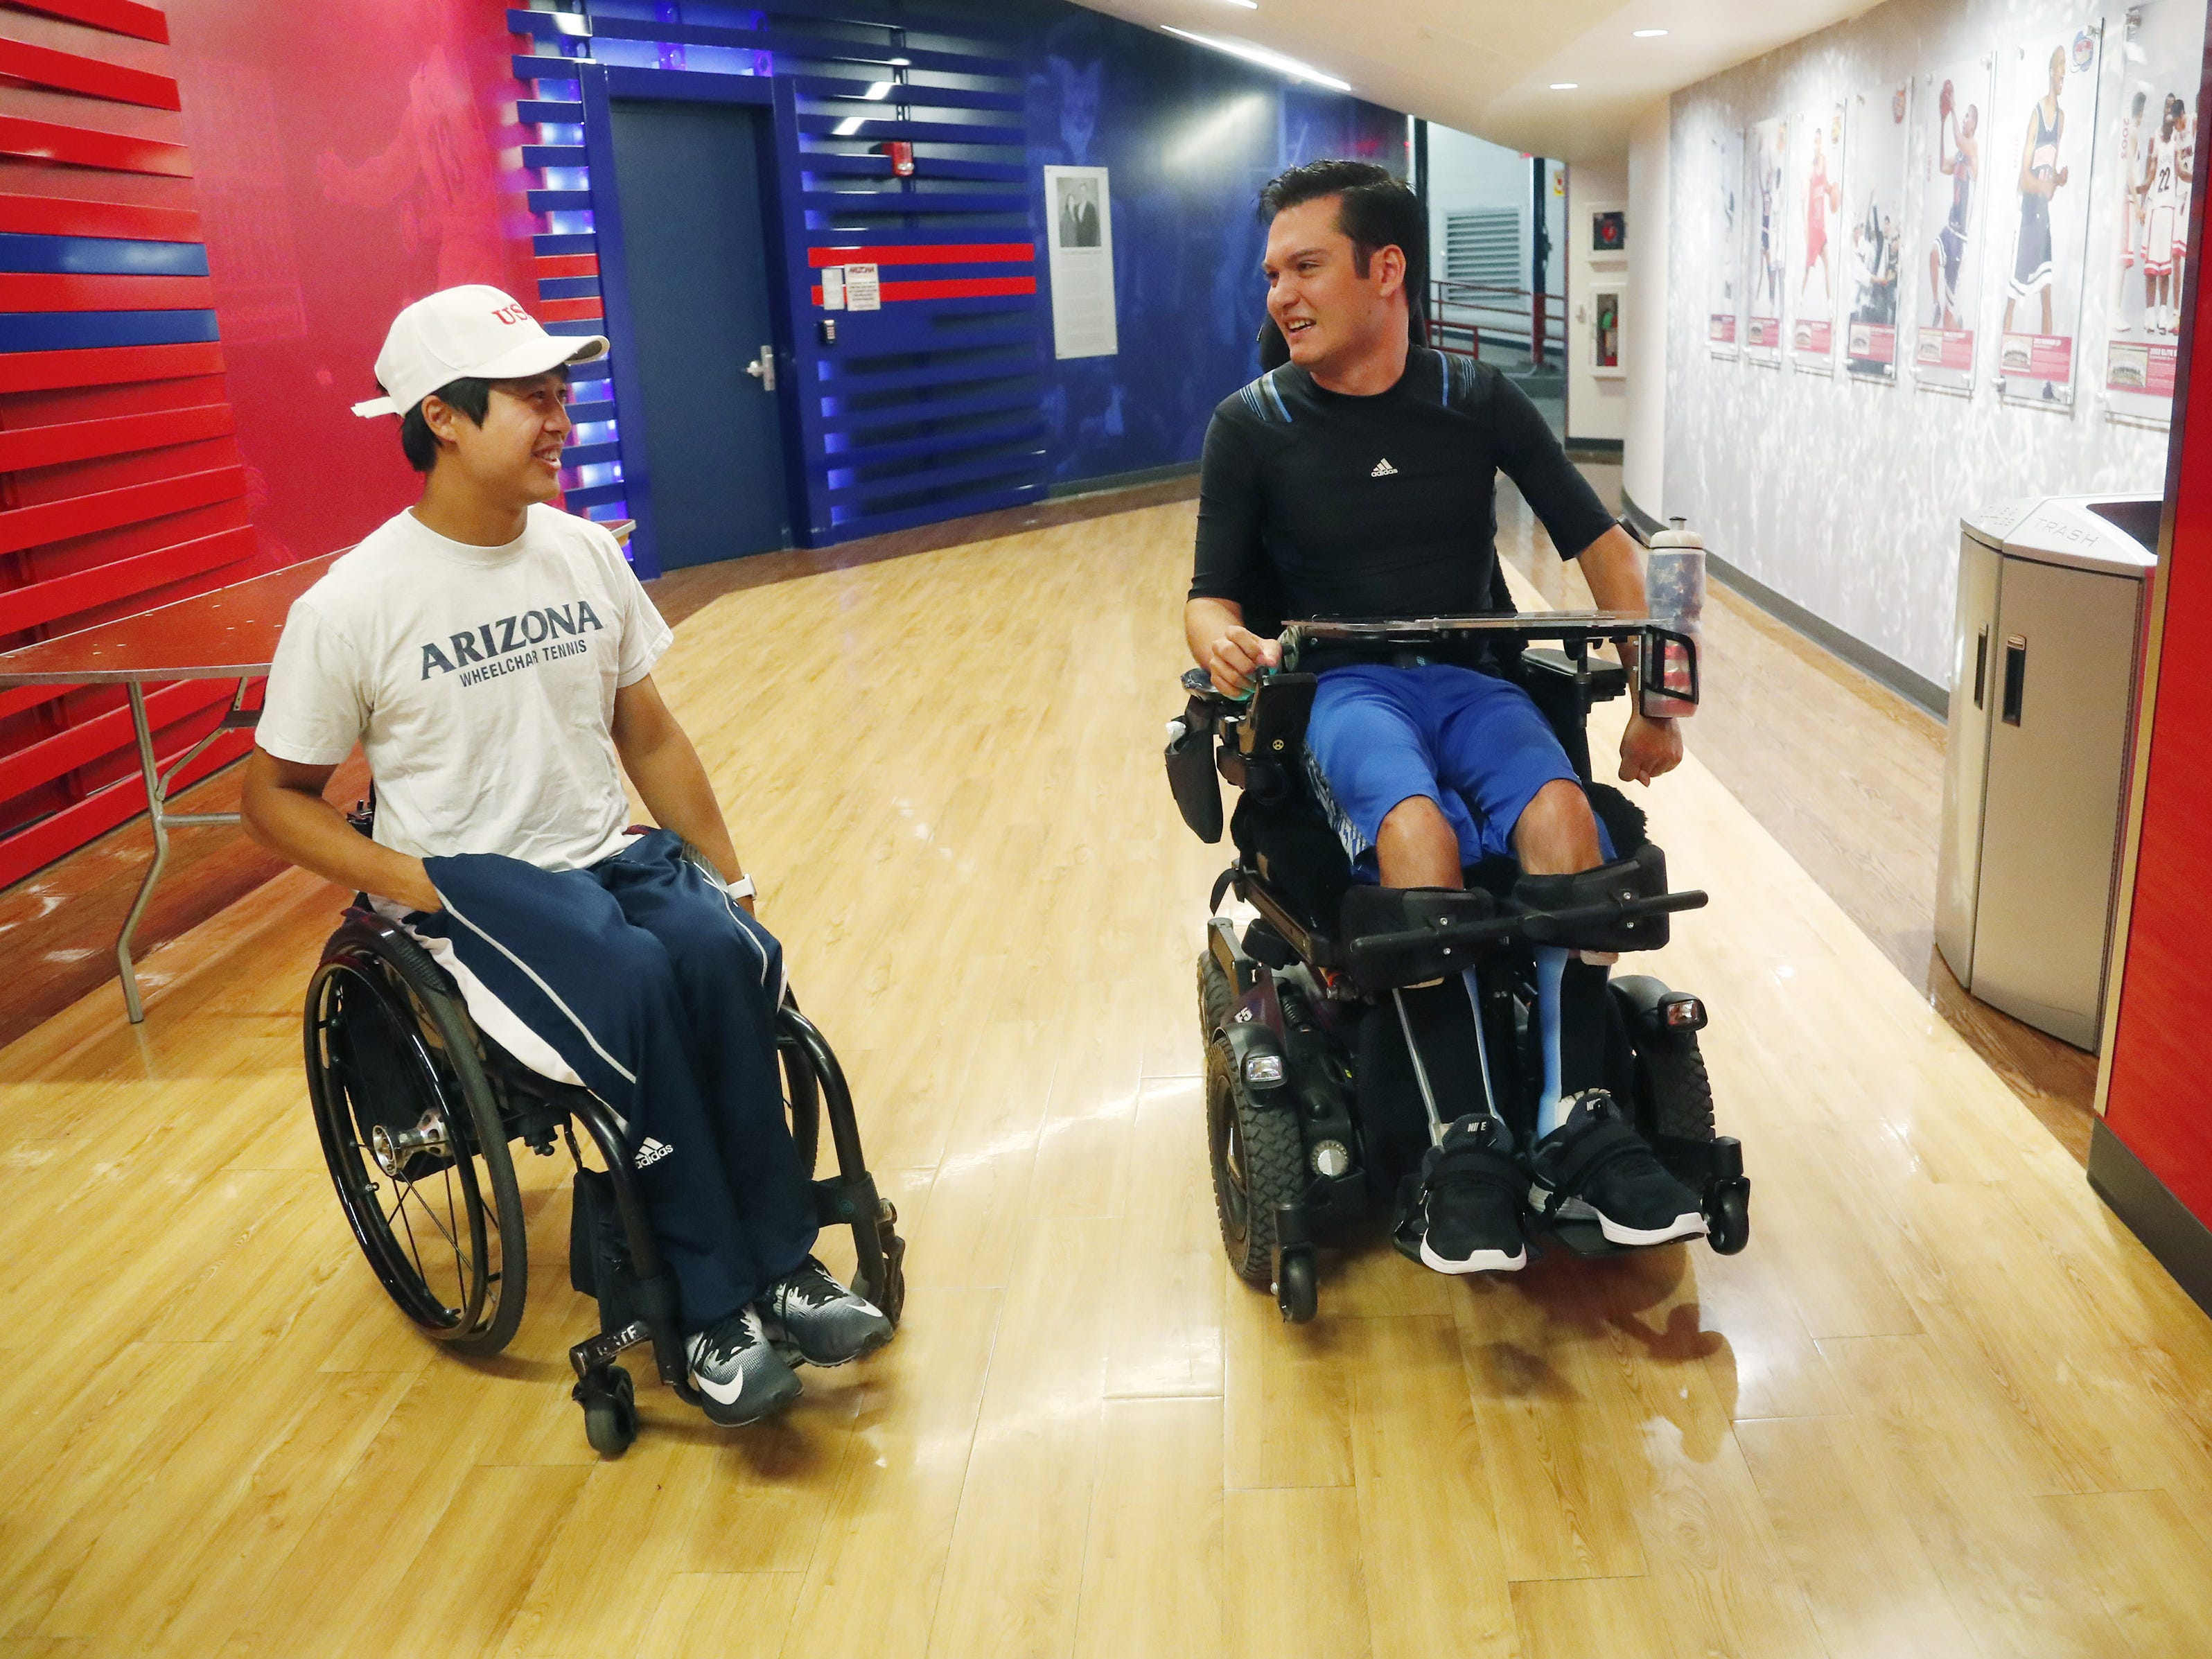 University of Arizona graduate Jeffrey Bristol (right) talks with Jason Keatseansilp at McKale Center in Tucson, Ariz. on May 8, 2019. Bristol has cerebral palsy and is a lifelong wheelchair user but has learned to walk with the help from a team of engineering students, including Keatseansilp, who helped construct an exoskeleton. Bristol plans on walking for graduation.